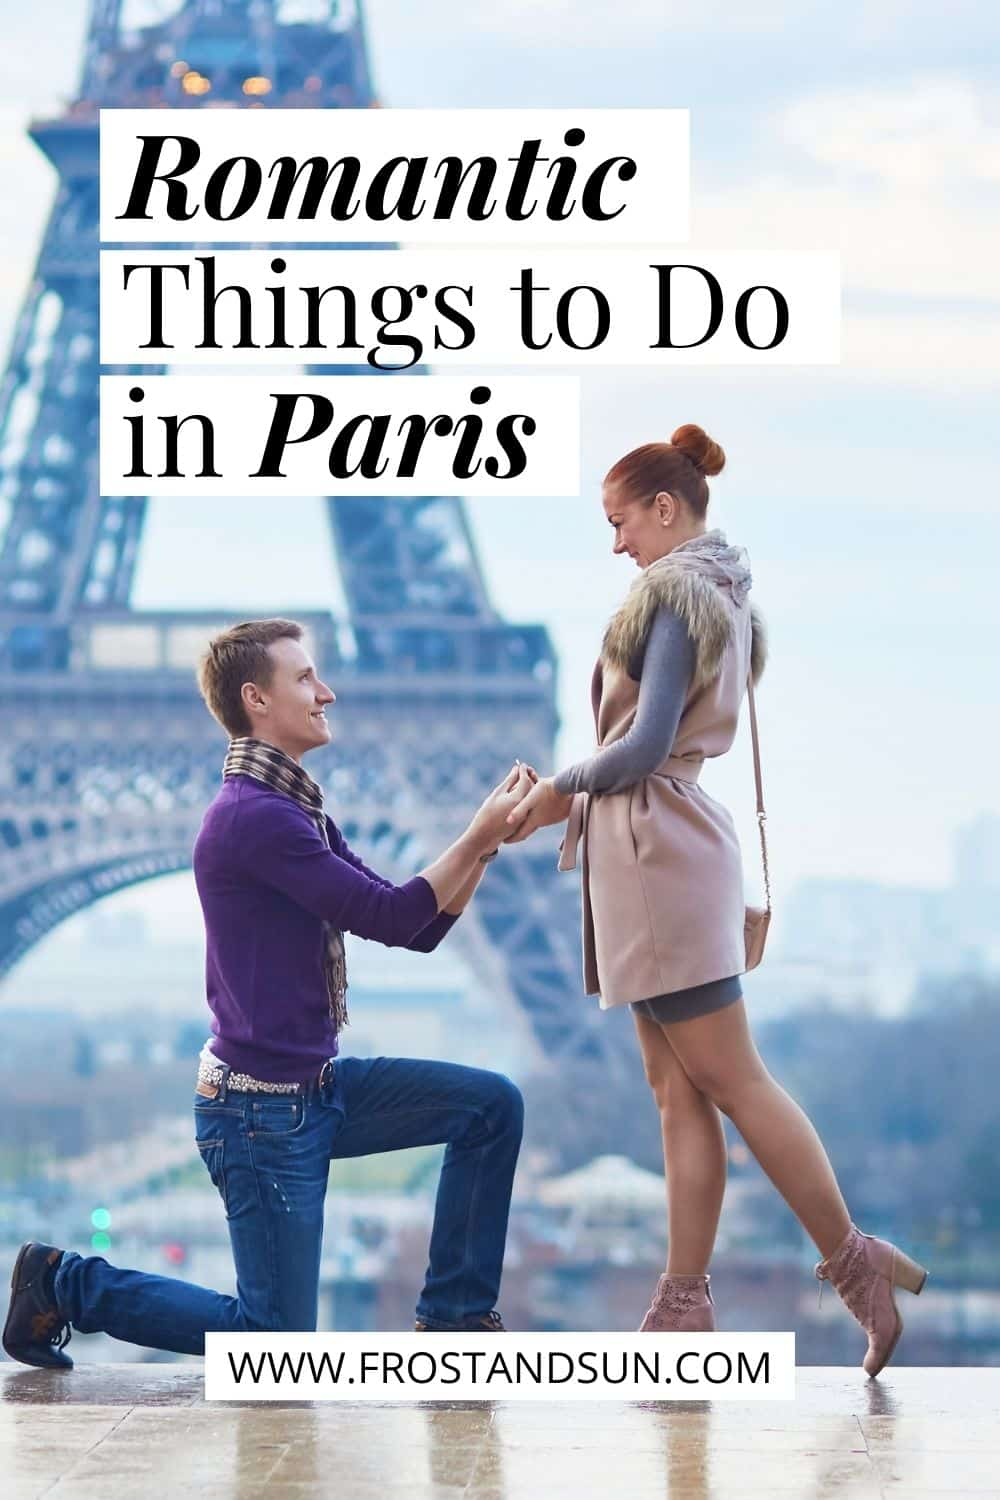 10 Romantic Things to Do in Paris, France